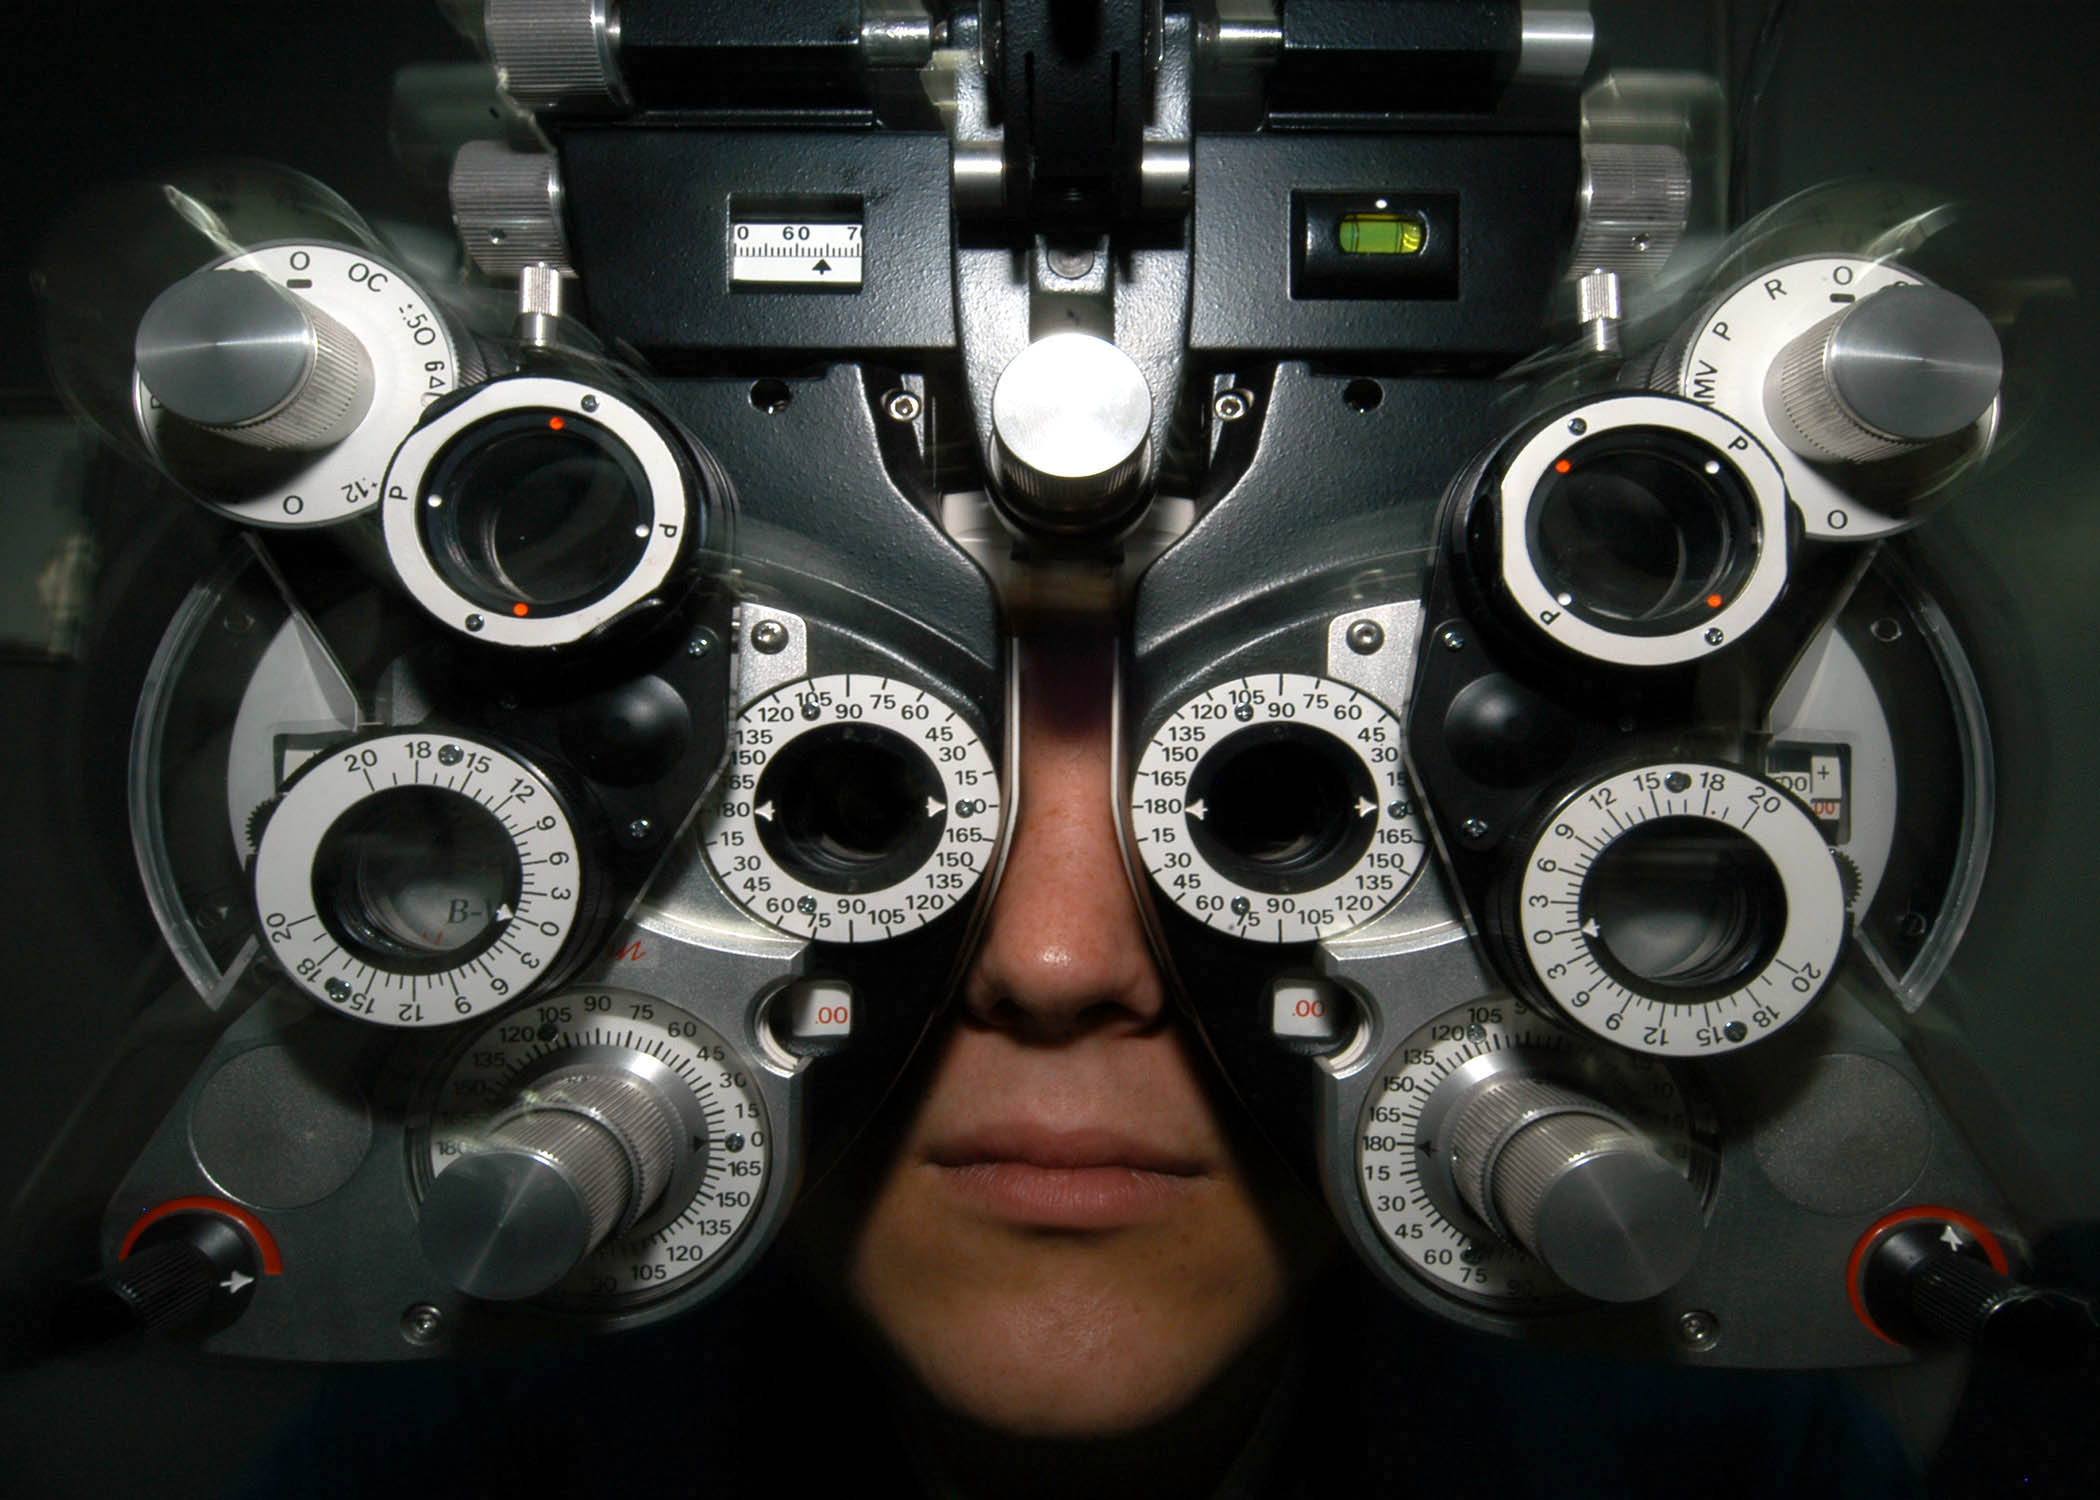 phoropter eye exam